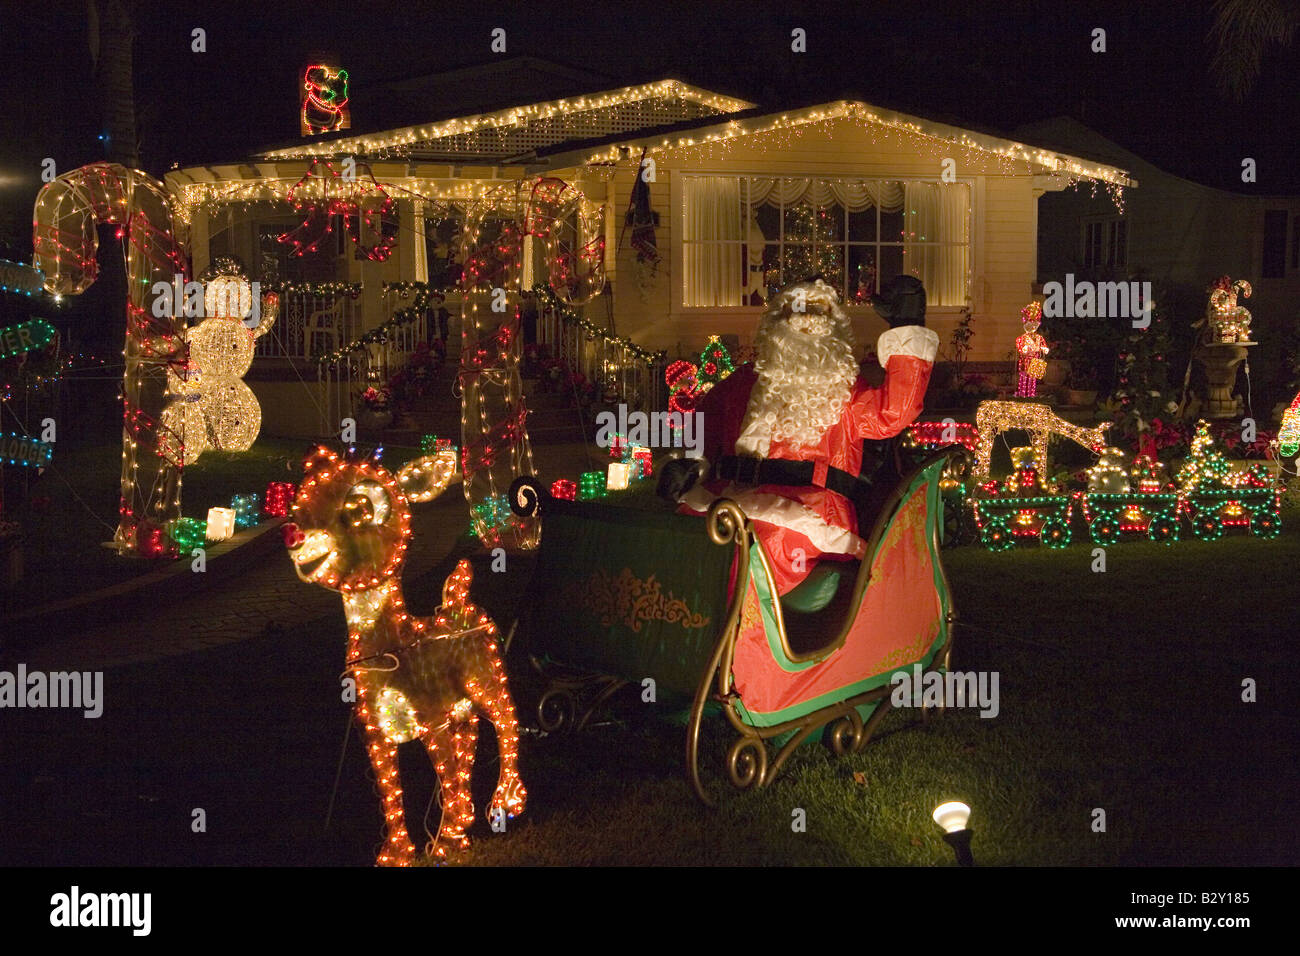 House With Christmas Lights.Santa Claus Waving In Front Of House With Christmas Lights